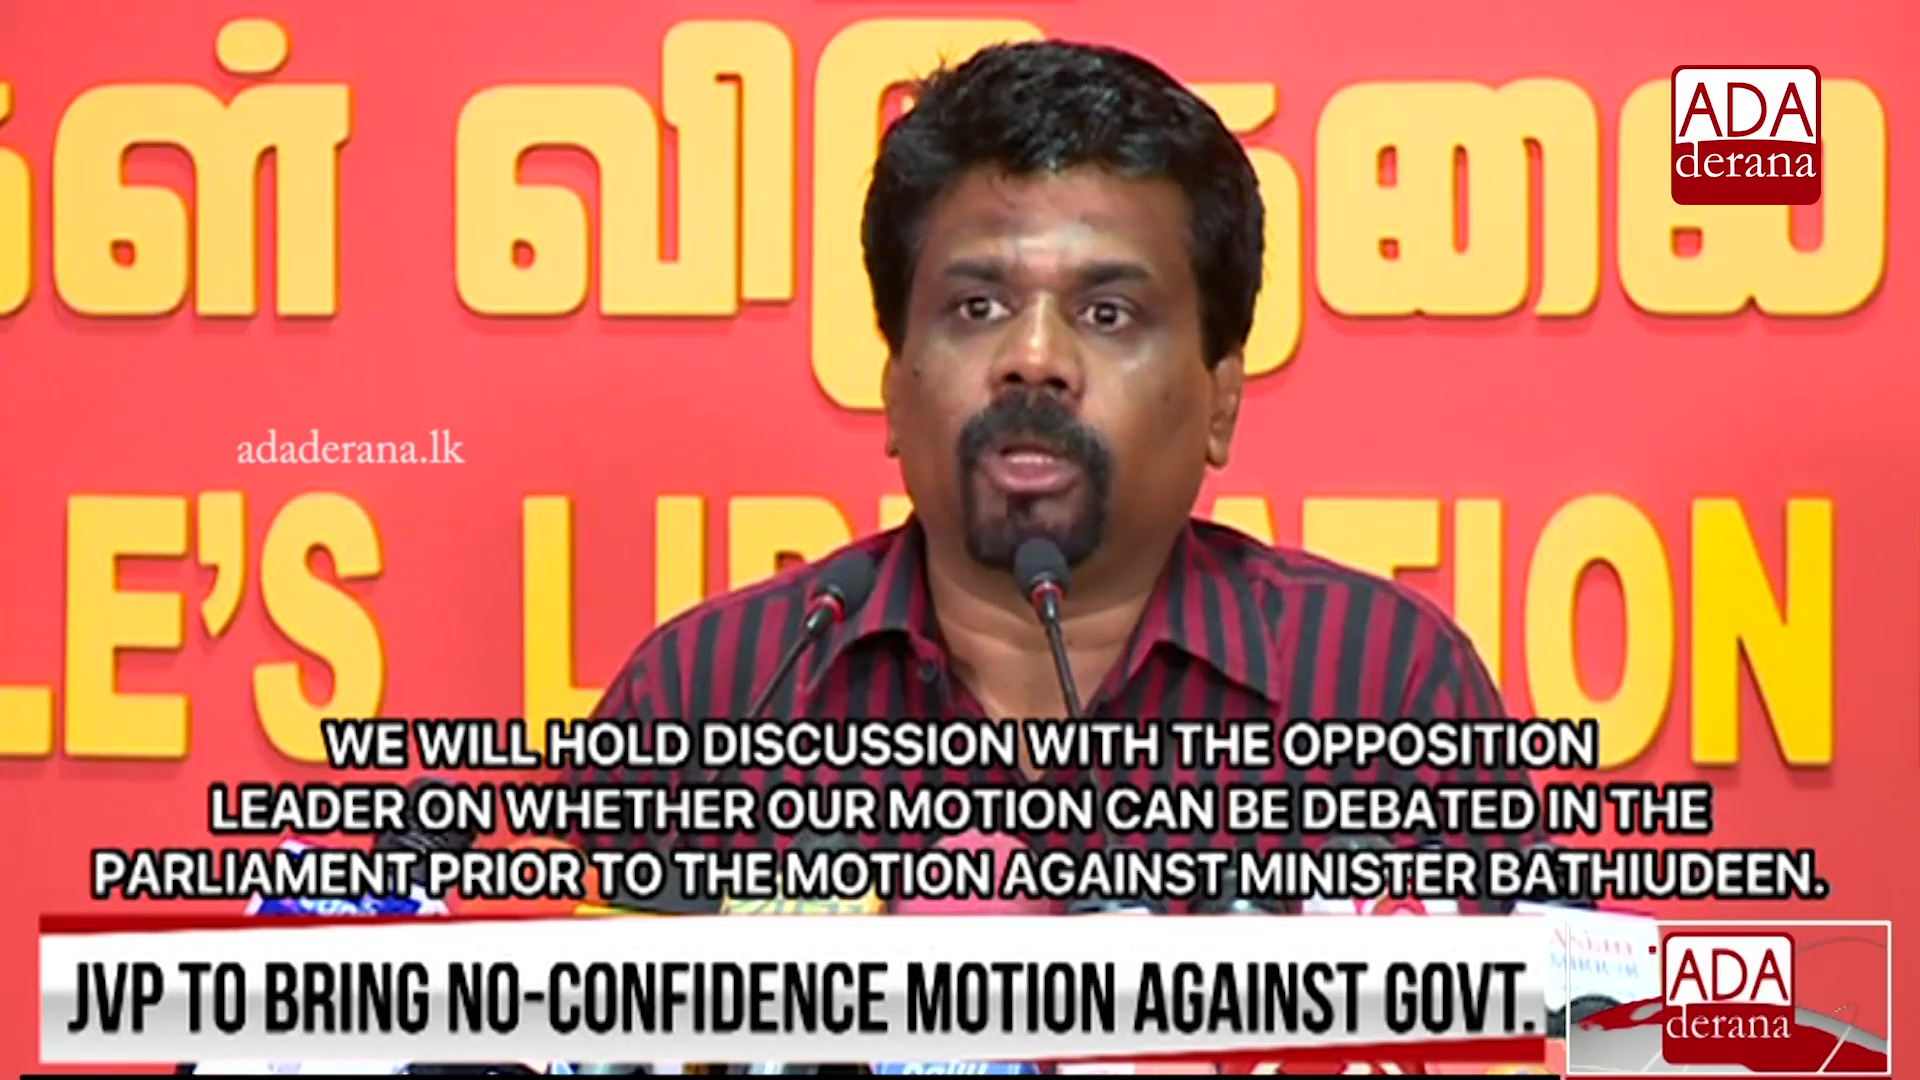 JVP to bring no-confidence motion against govt (English)